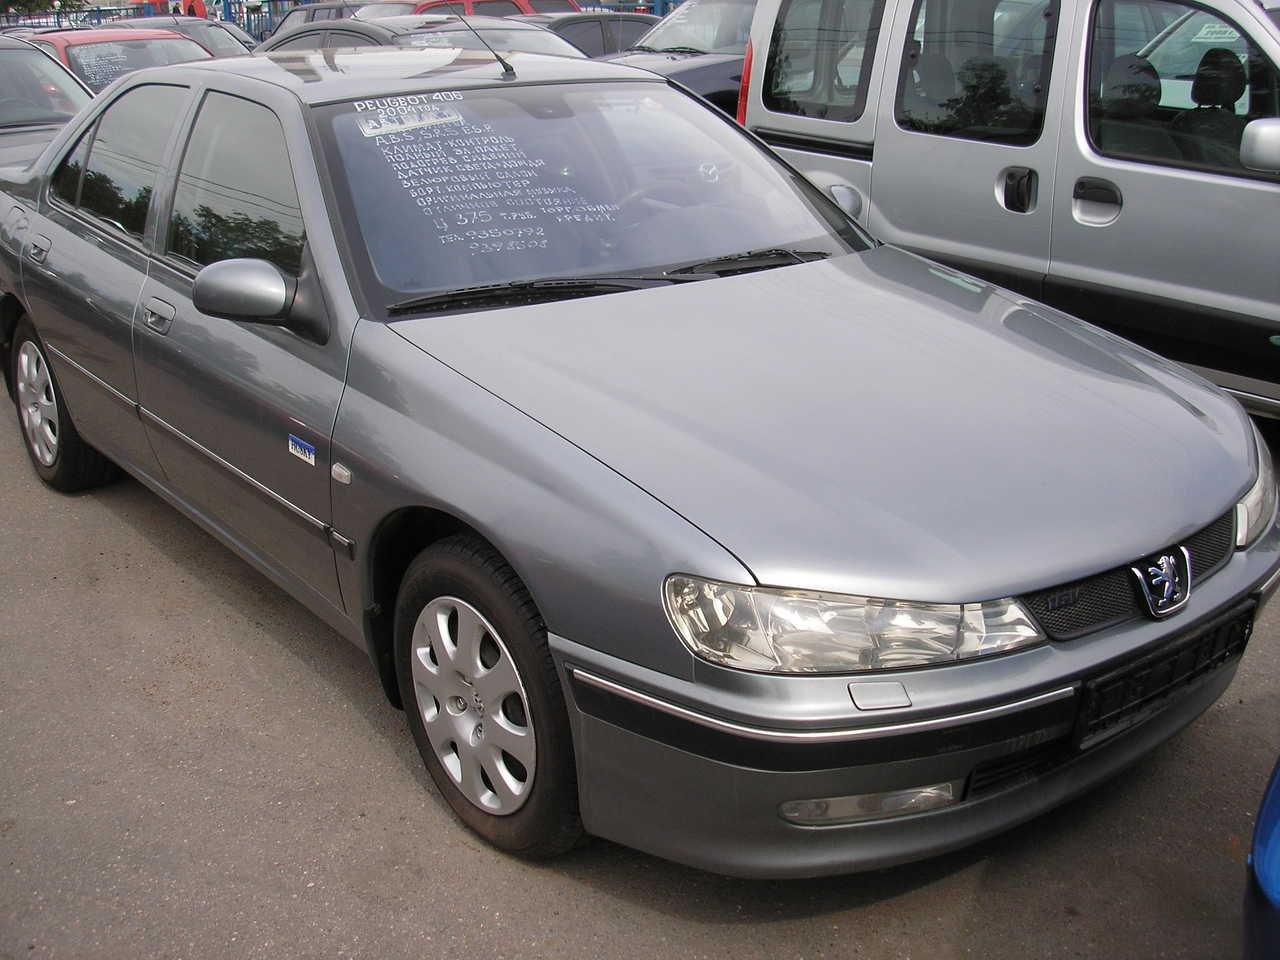 used 2004 peugeot 406 photos gasoline ff automatic for sale. Black Bedroom Furniture Sets. Home Design Ideas